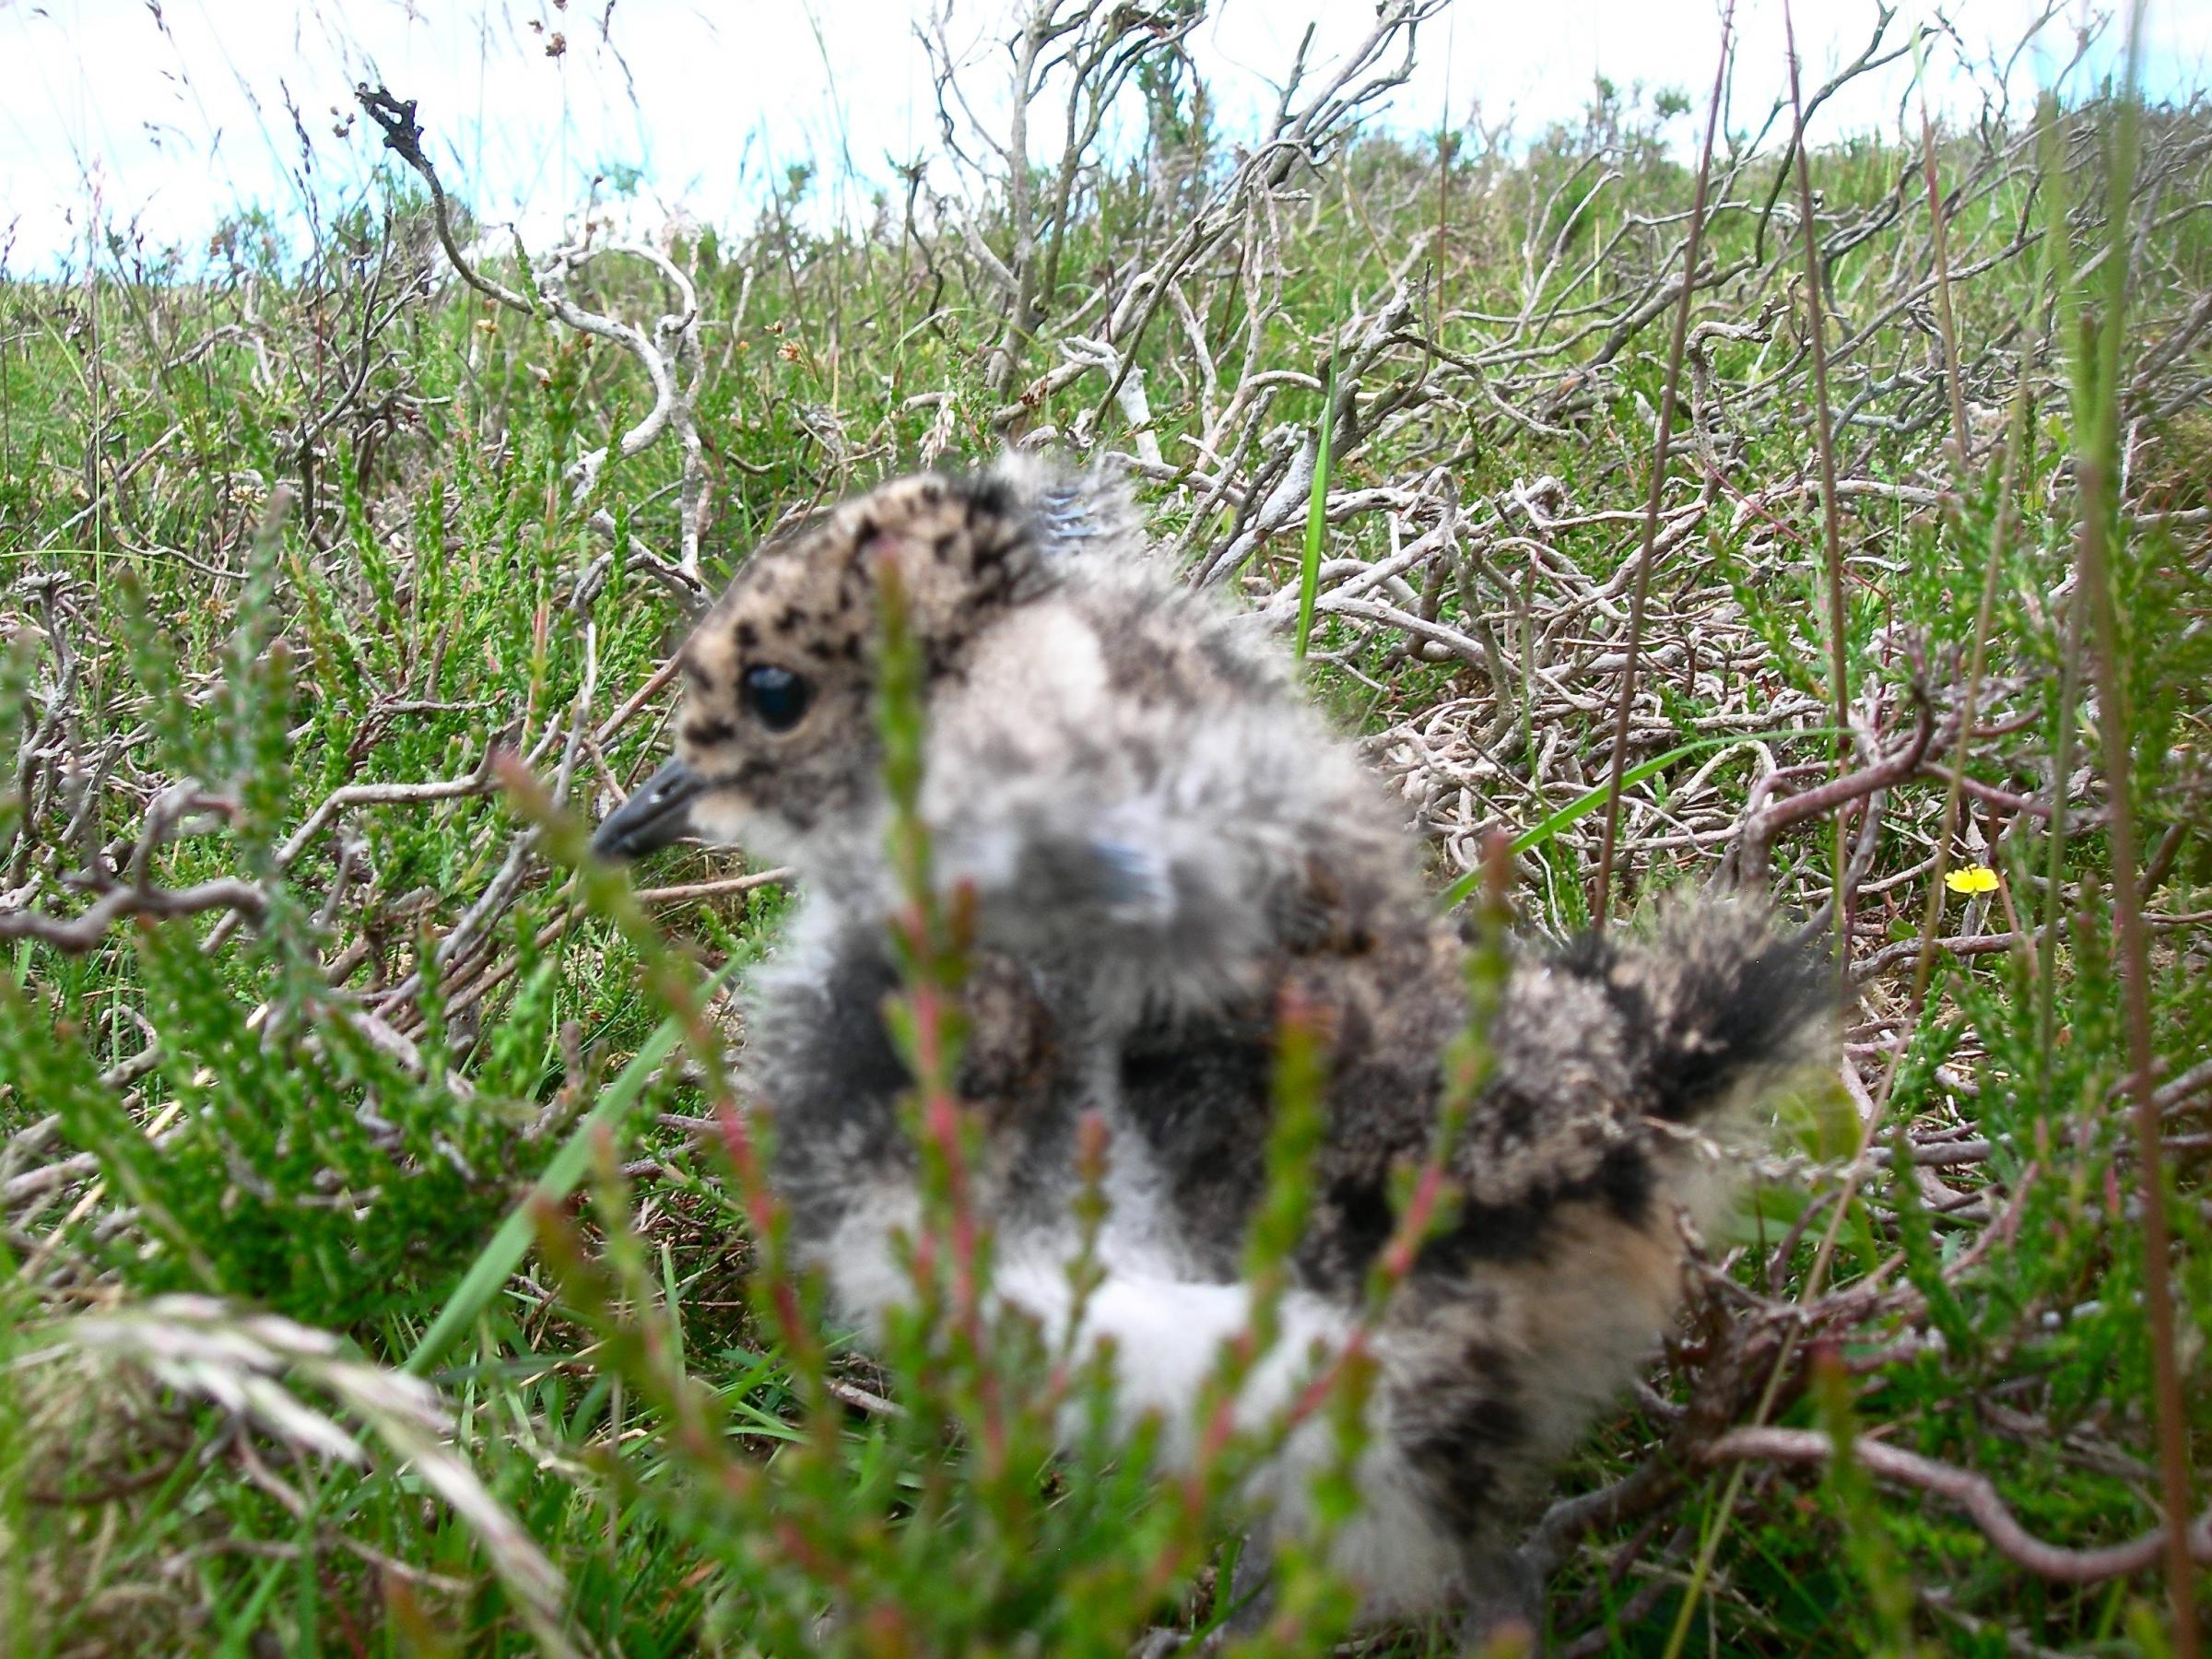 Lapwing chick, in its nest